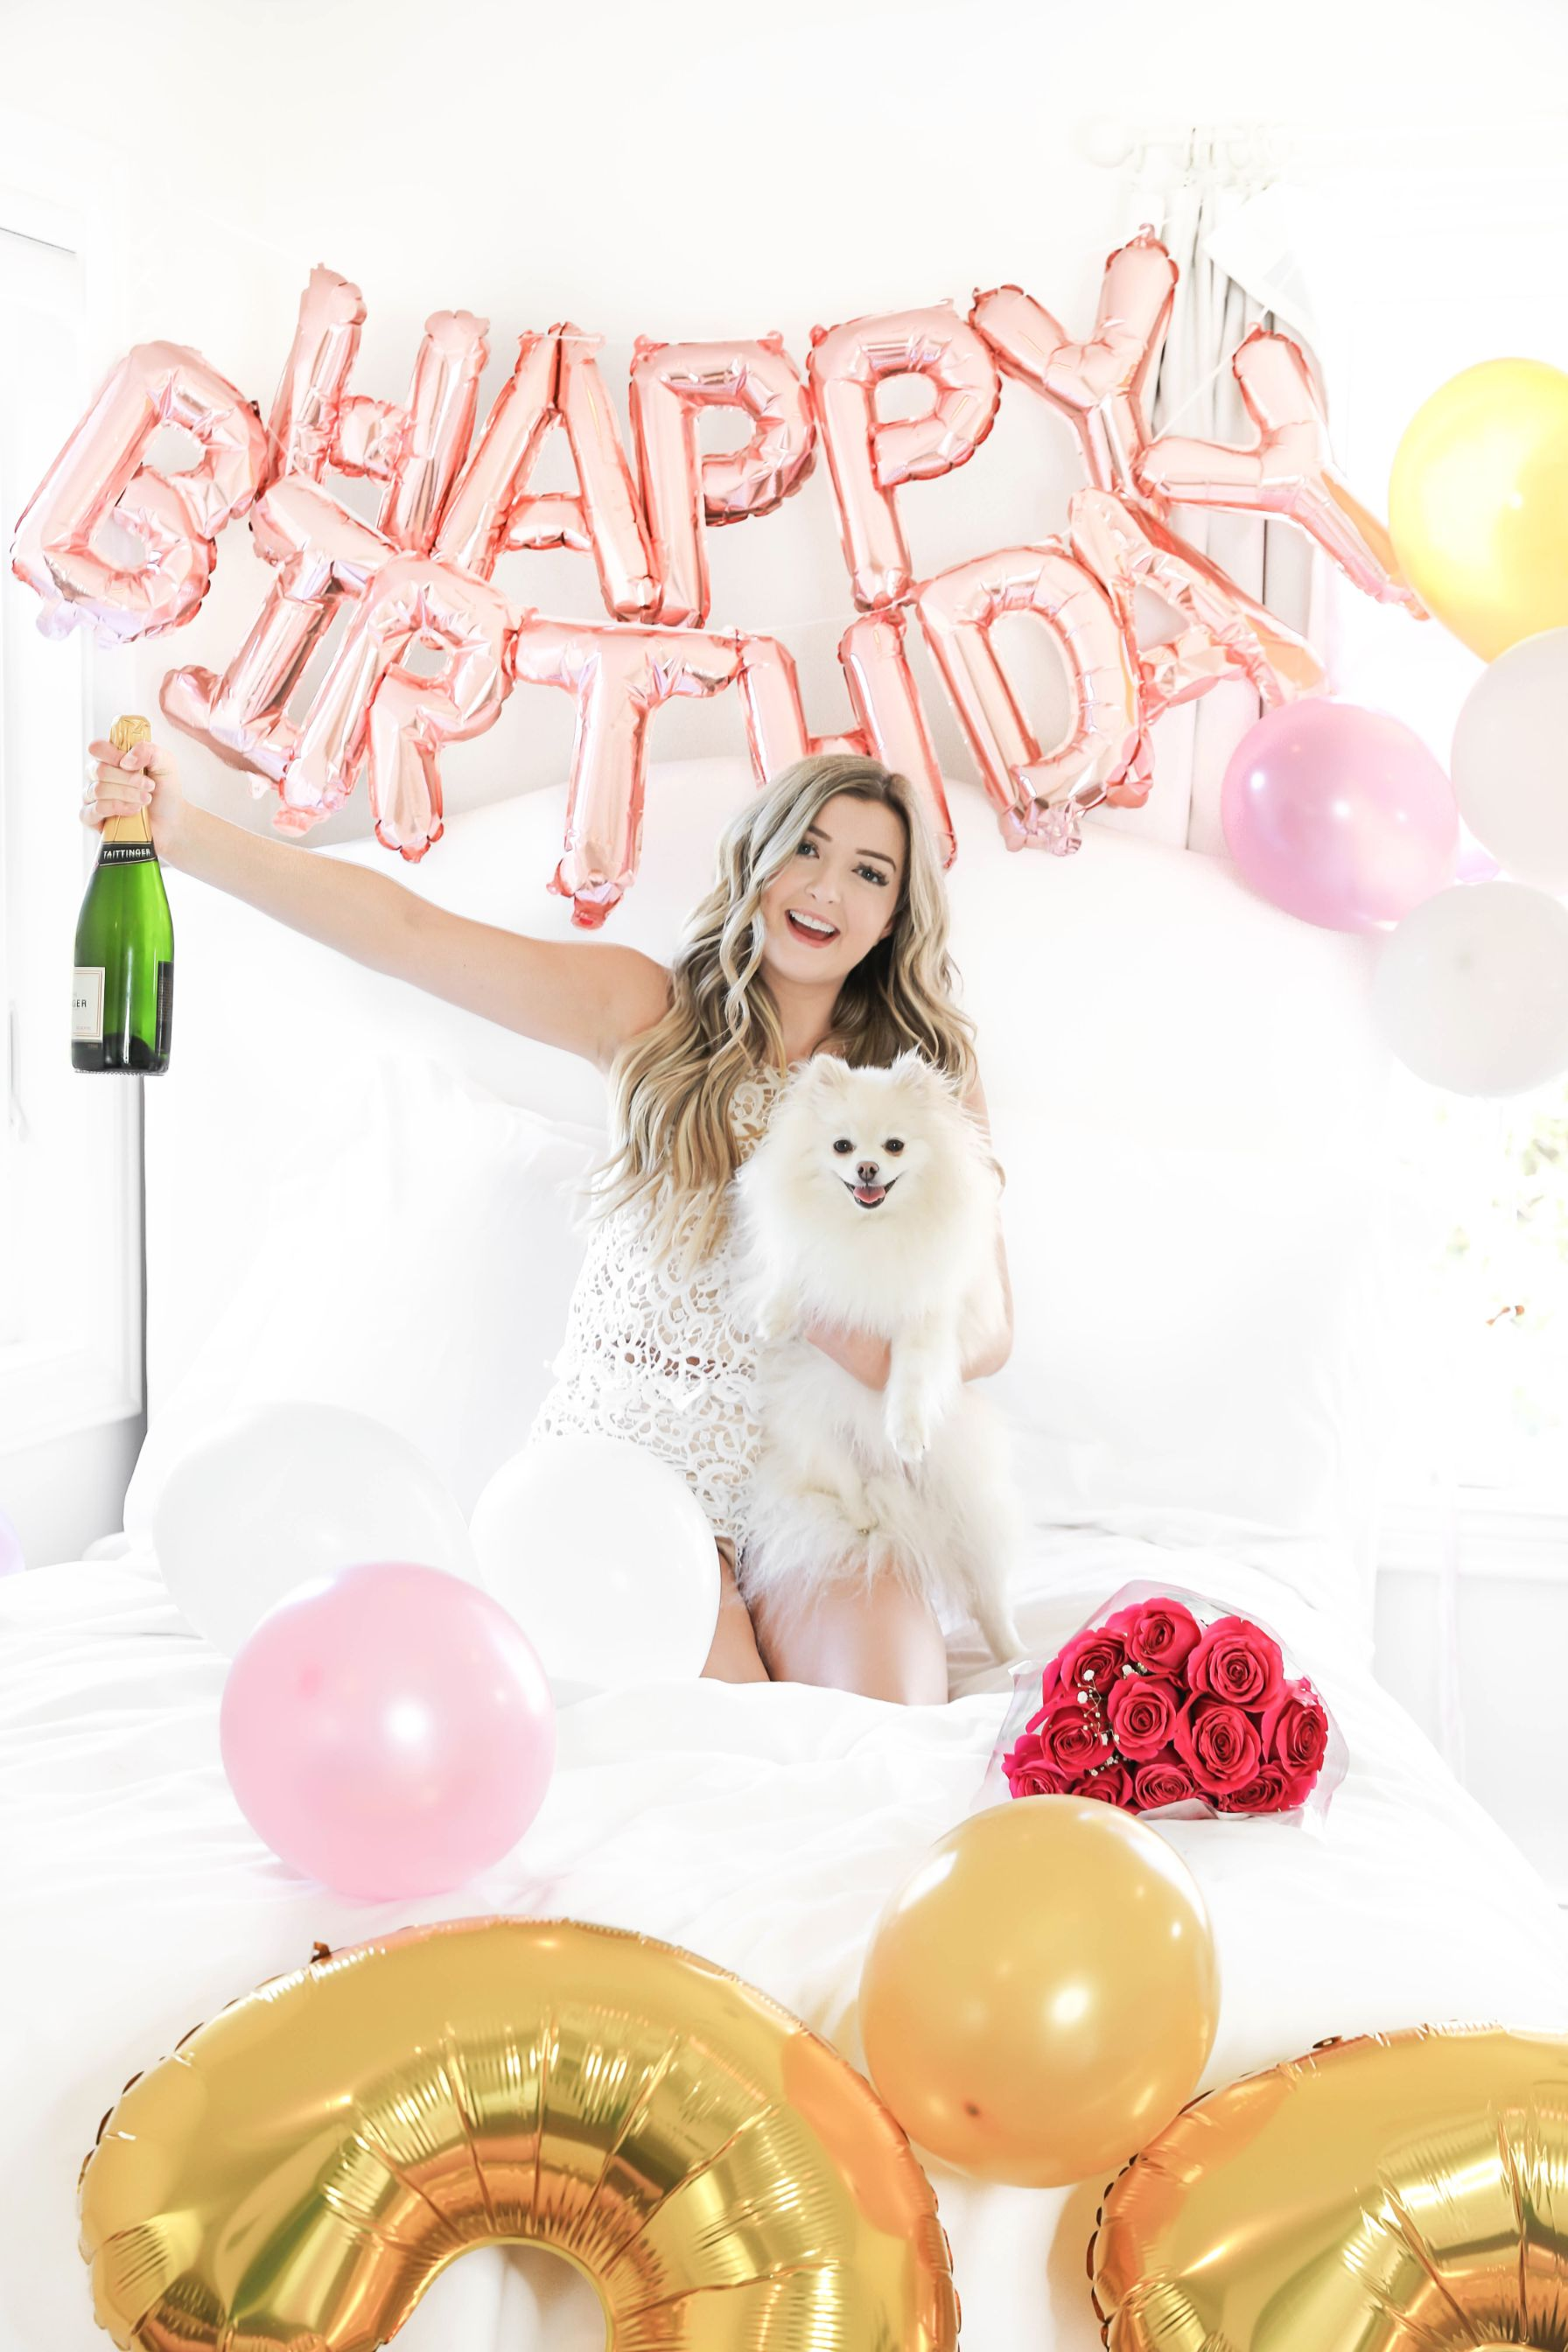 Happy birthday balloons photoshoot in bed with happy birthday blow ups and champagne! Details on fashion blog daily dose of charm by lauren lindmark